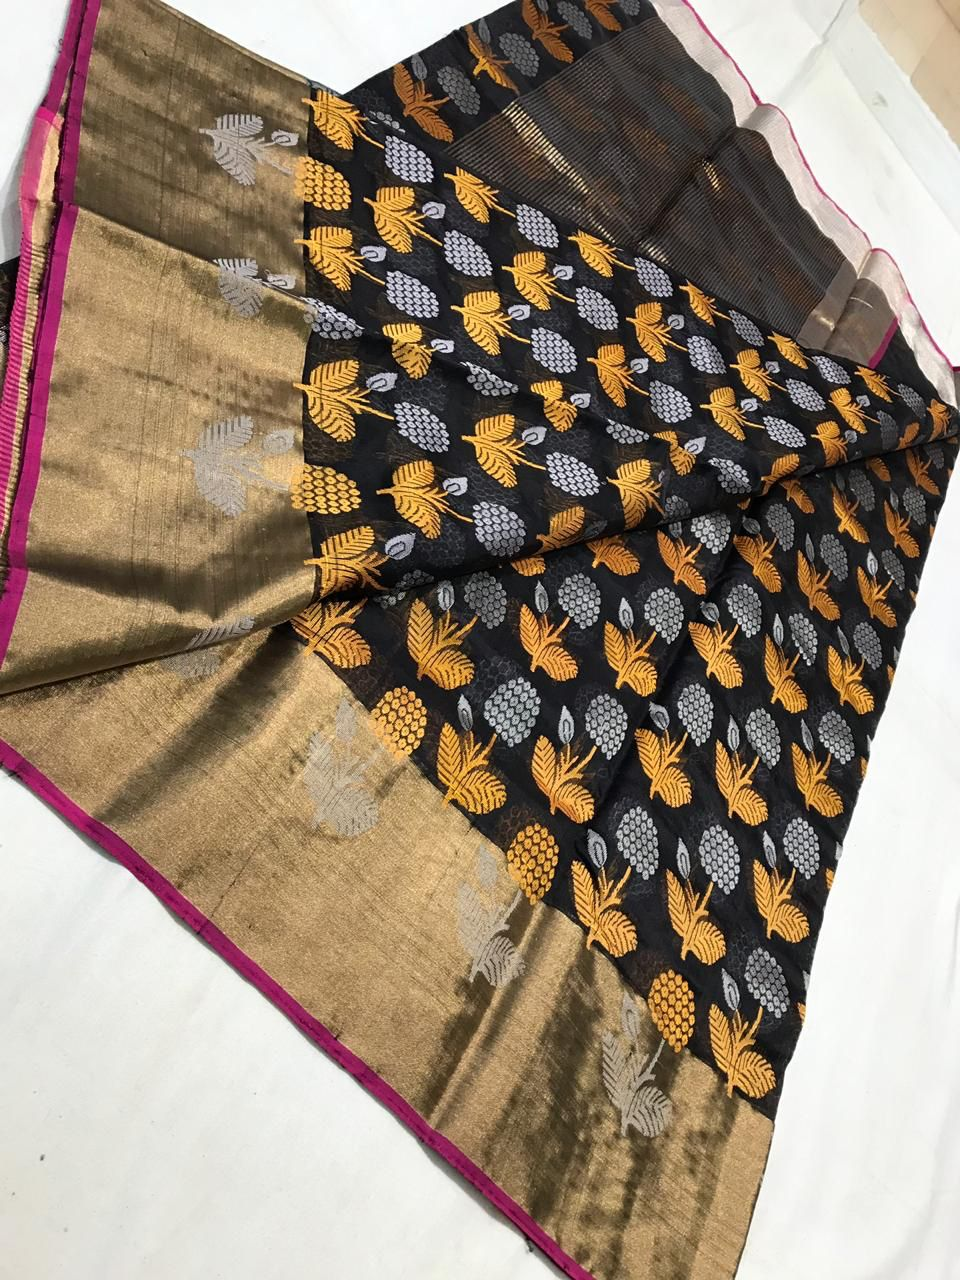 10b1e9f8304 Katan silk handwoven chanderi saree directly from the weavers of Chanderi !  Let s give it back to their community and help in reviving the rich culture  of ...